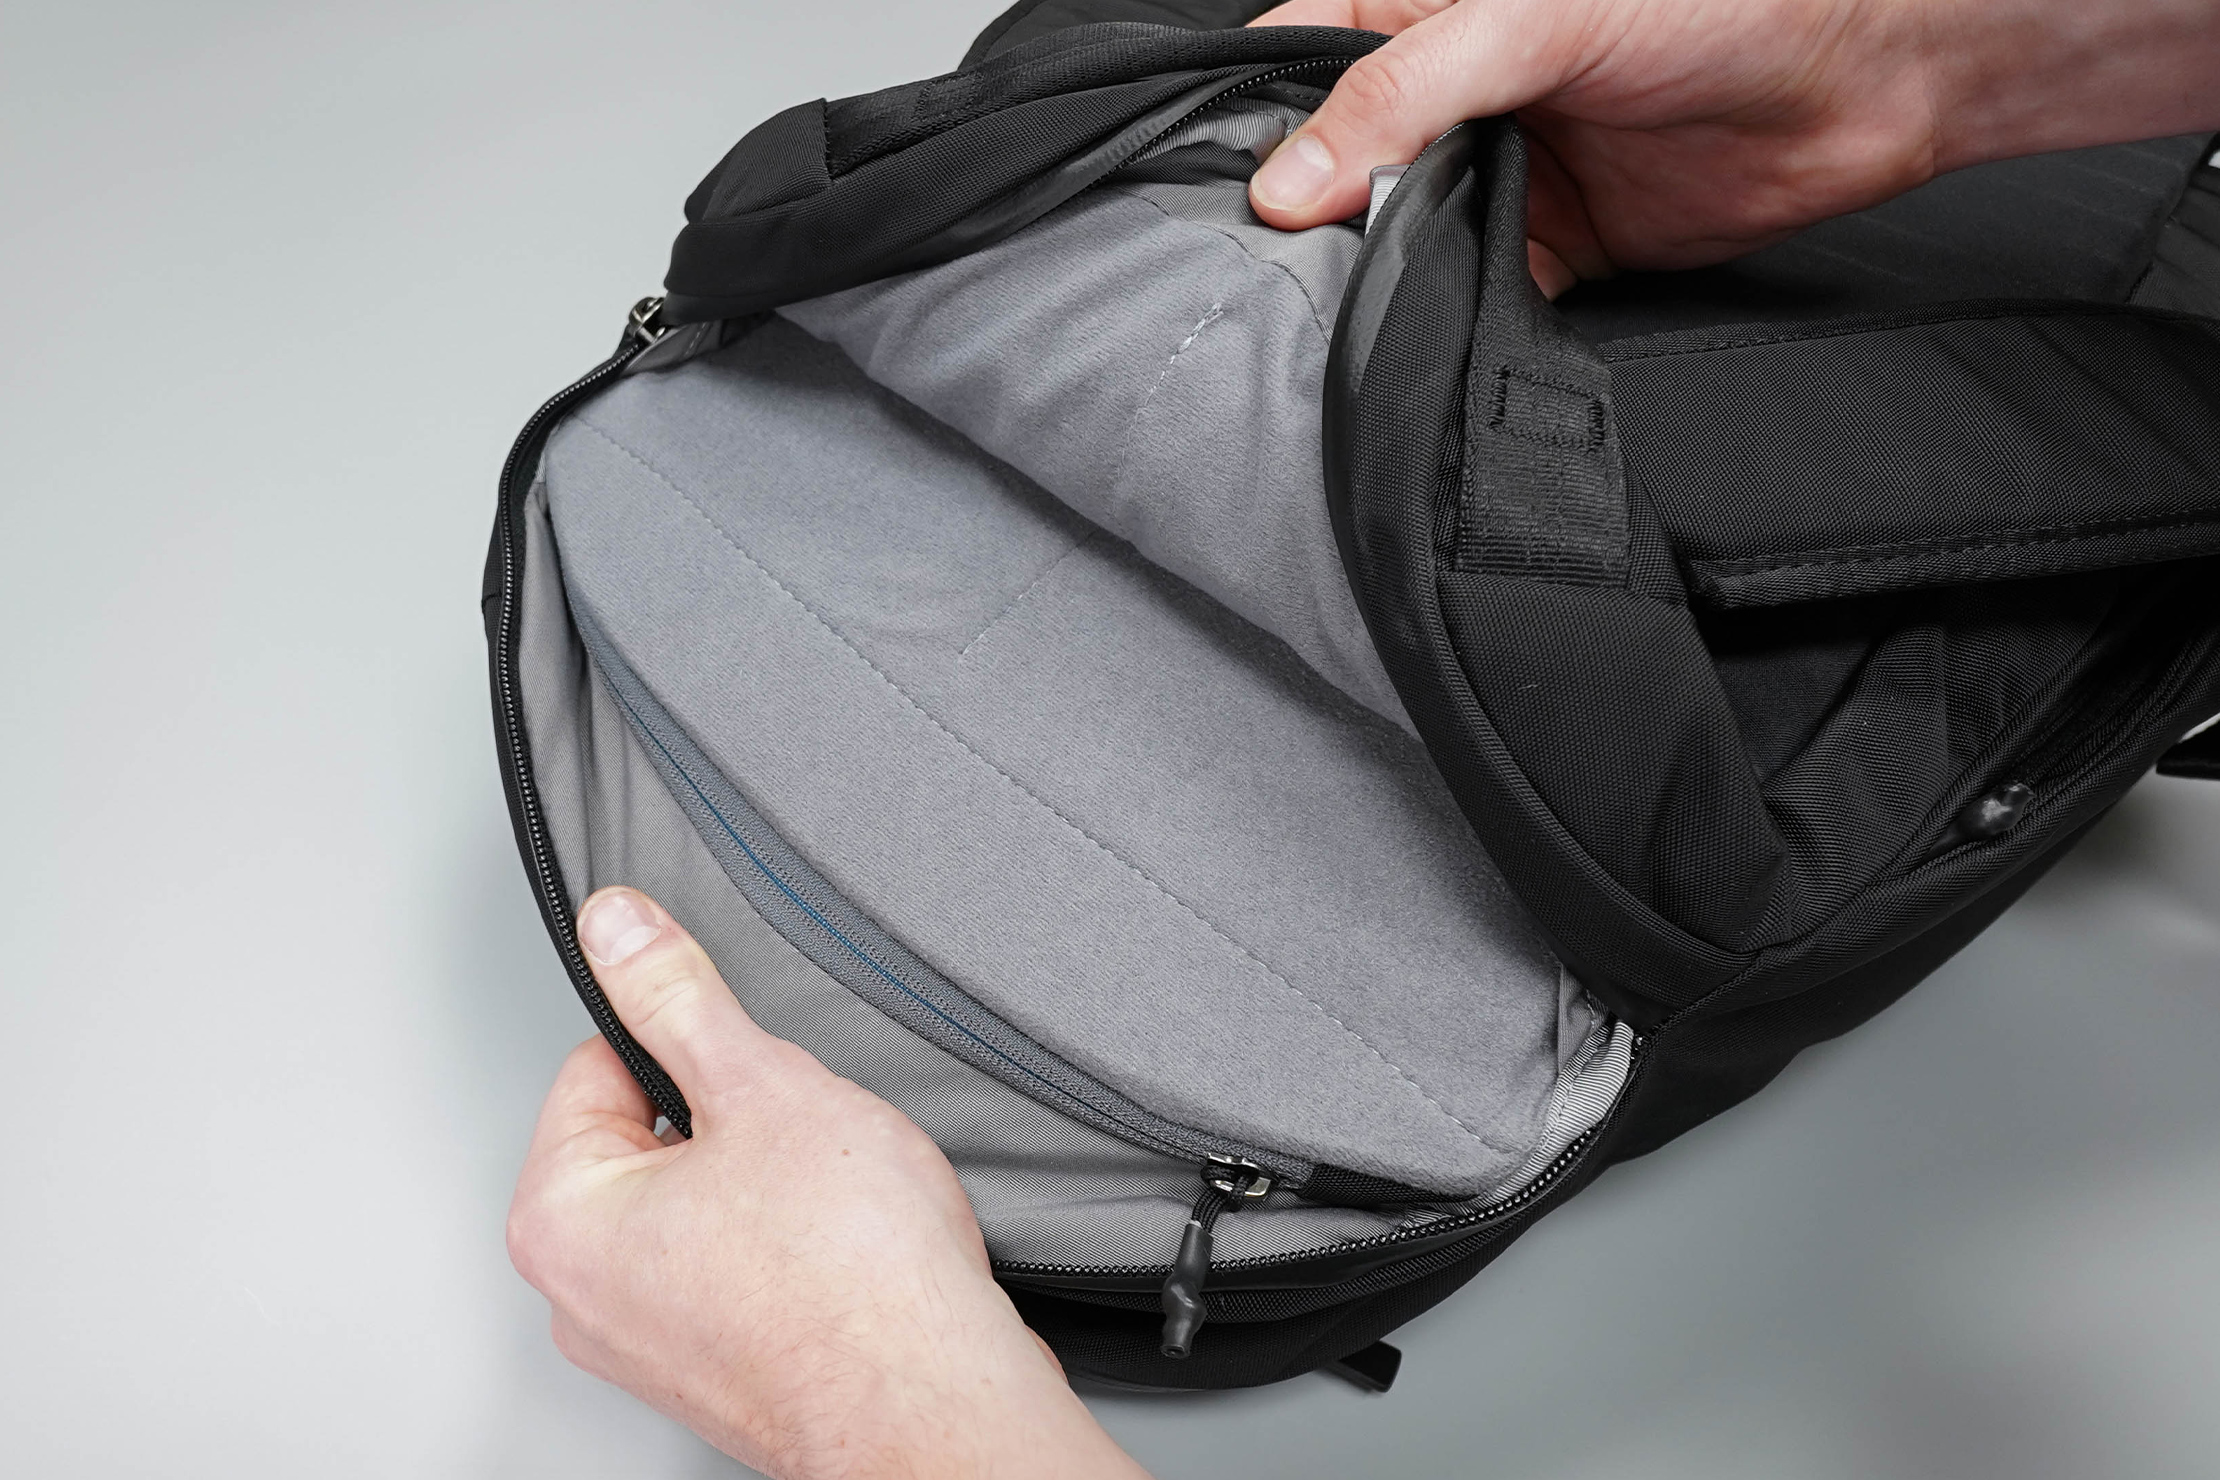 Bellroy Transit Backpack Laptop Compartment